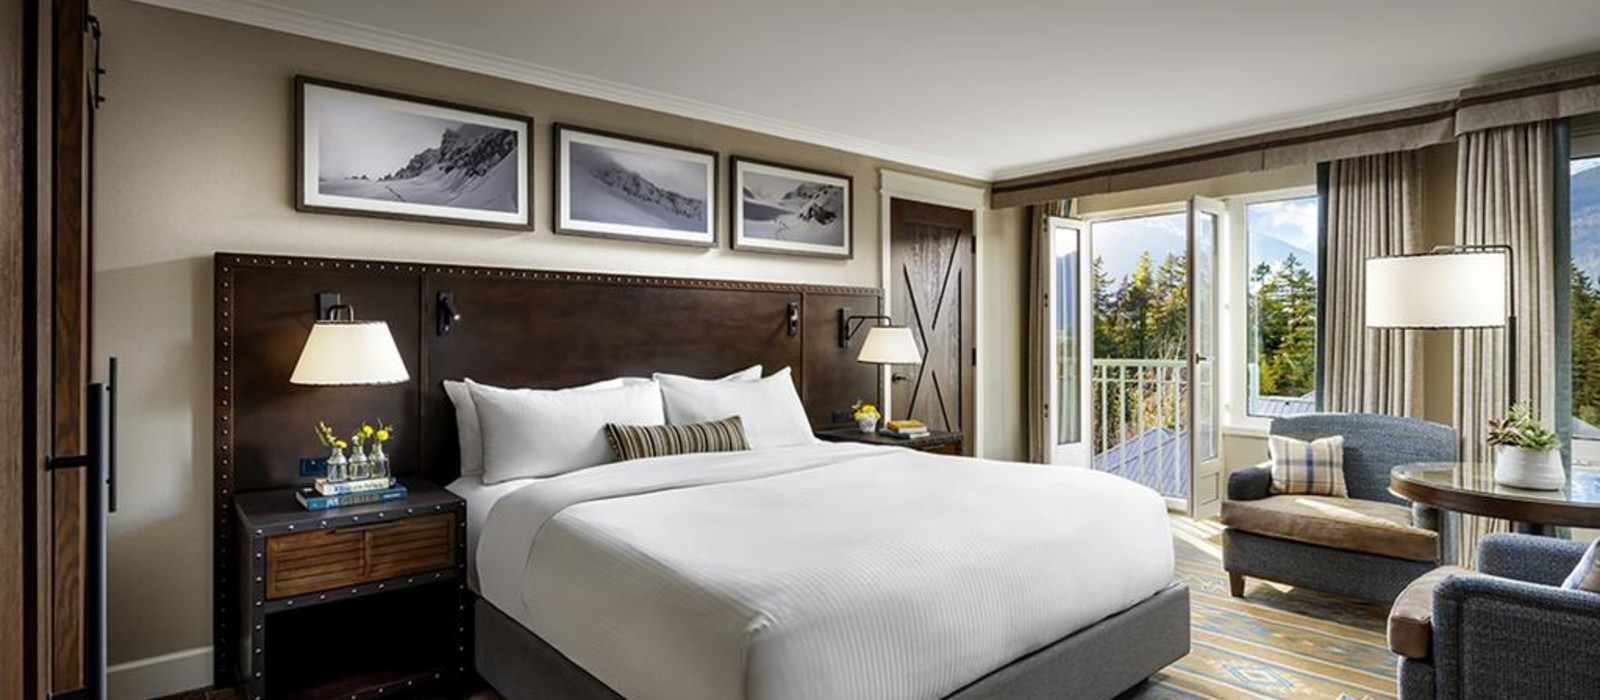 Hotel Fairmont Chateau Whistler Canada